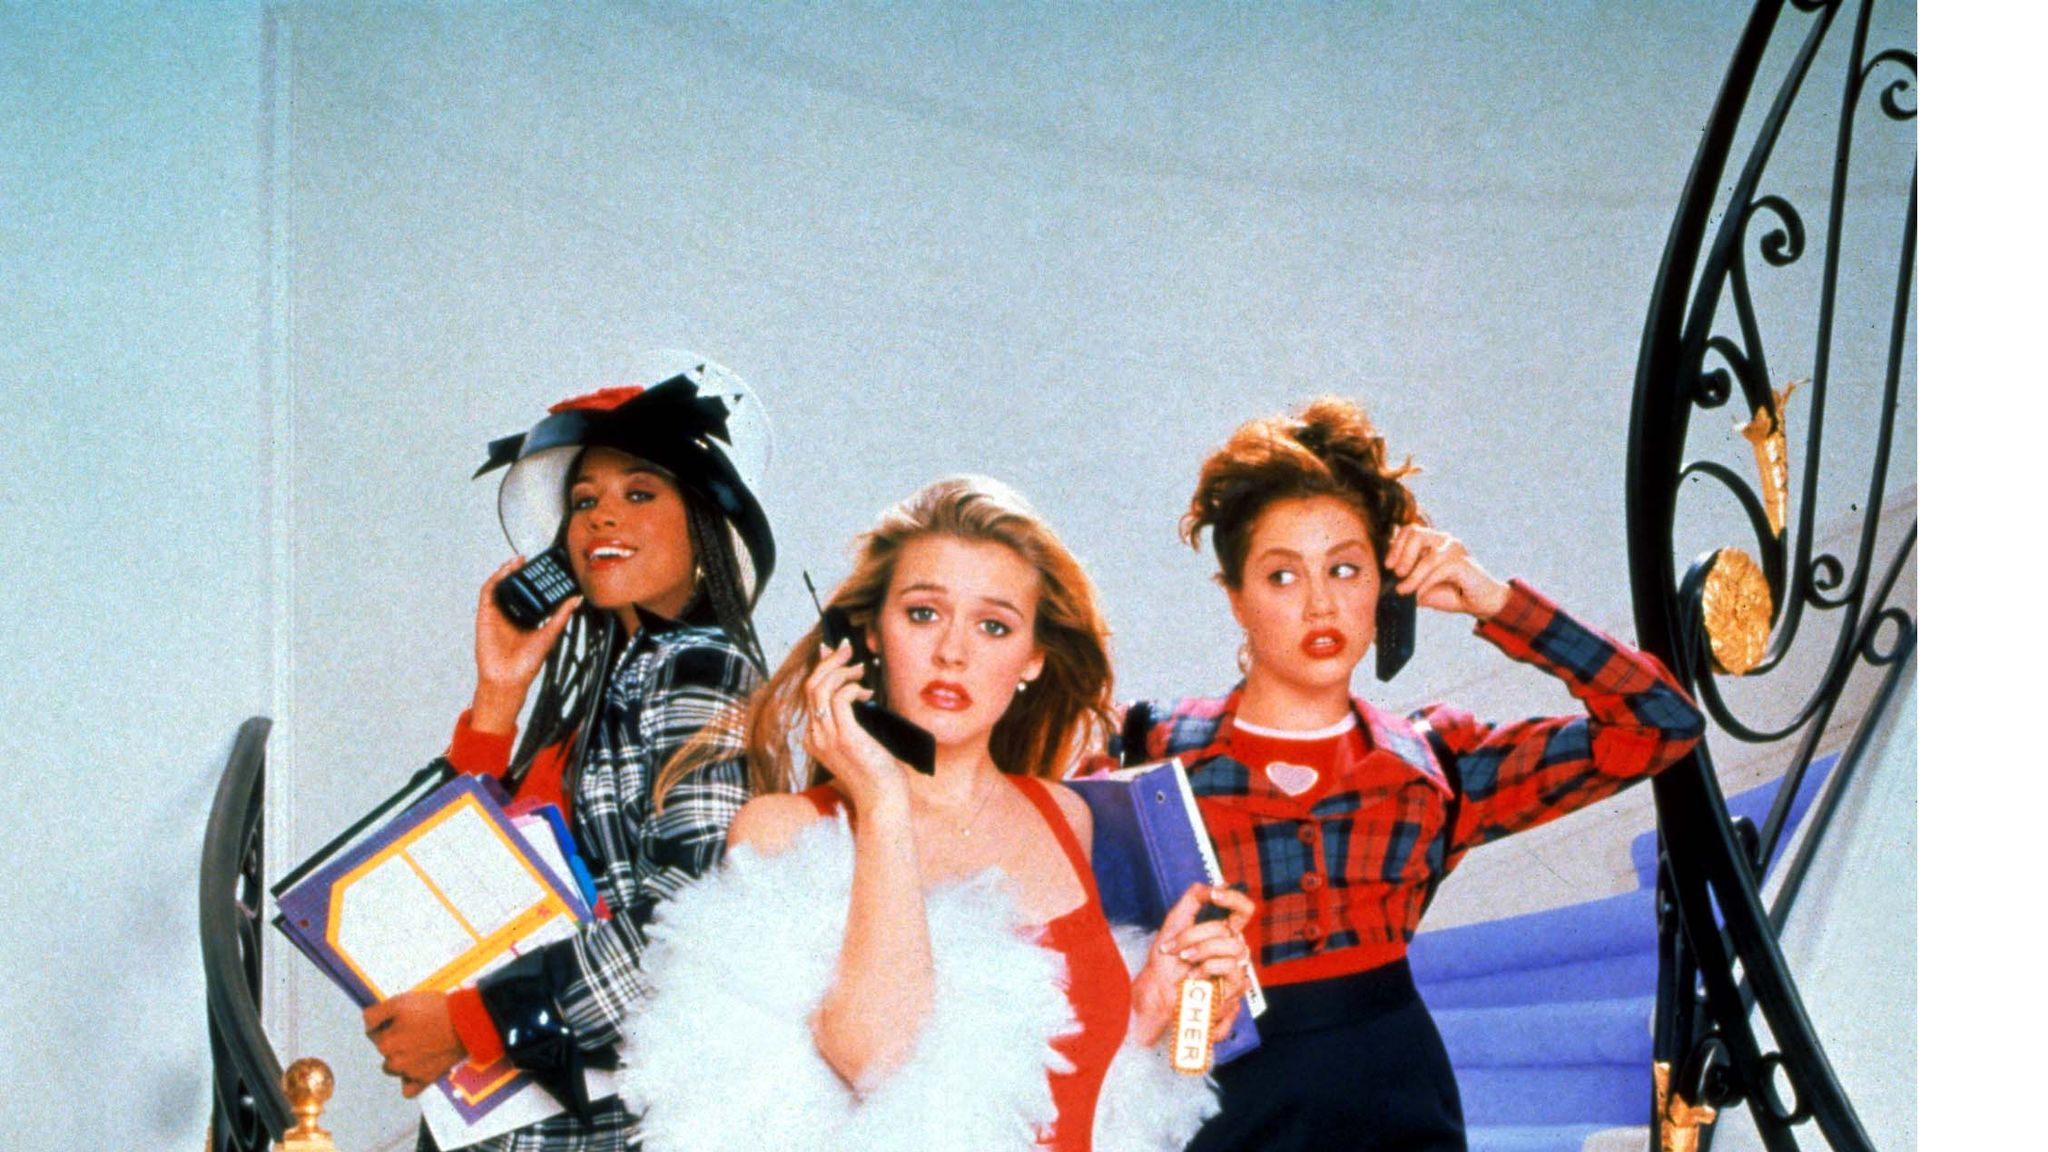 Cult 90s high school comedy Clueless set for TV comeback